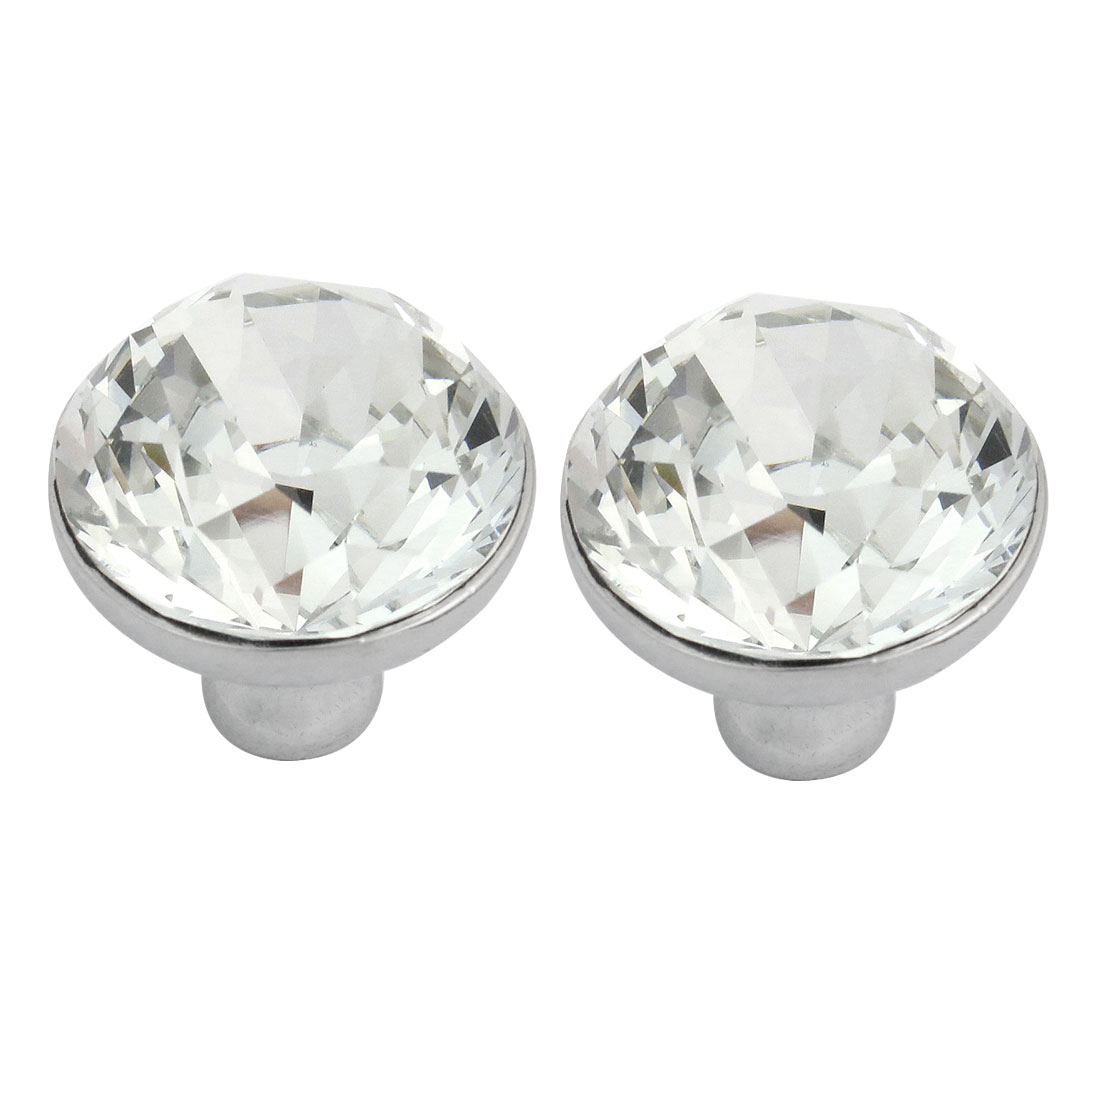 2 Pcs 30mm Bling Plastic Crystal Cabinet Drawer Door Round Knob Pull Handle